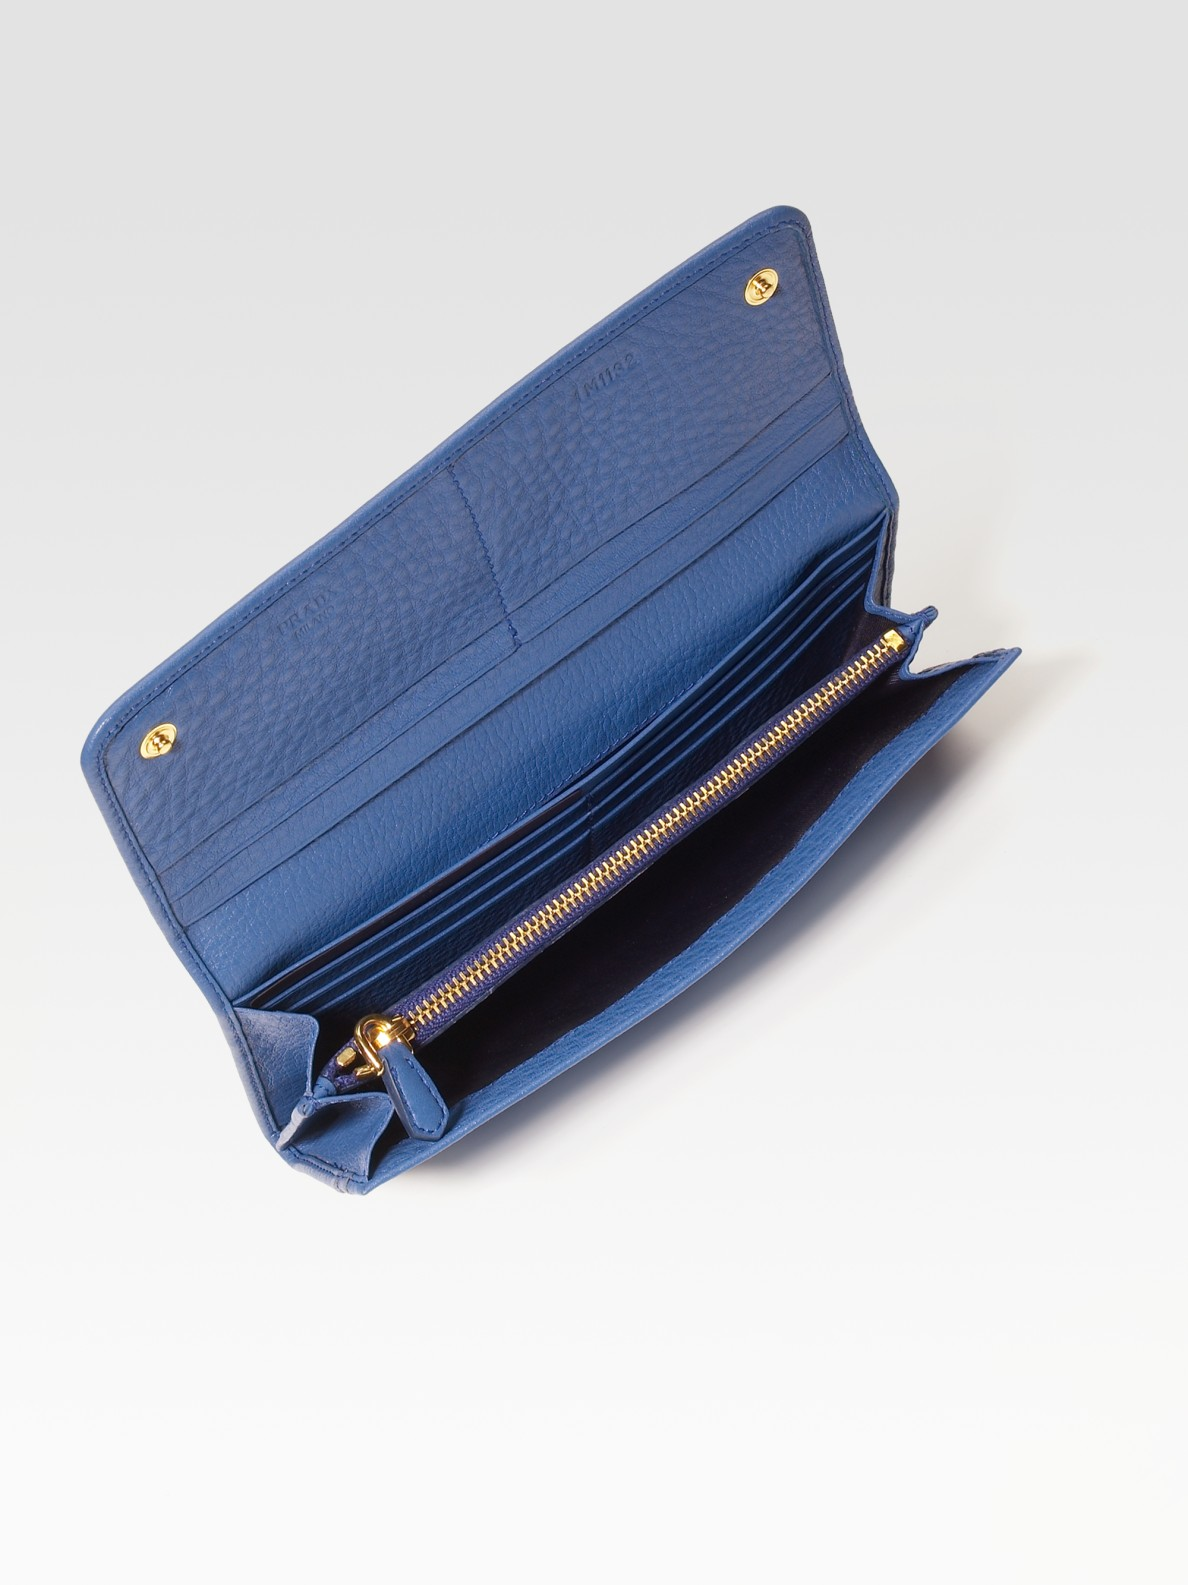 Prada Vitello Daino Flap Continental Wallet in Blue (cobalt) | Lyst